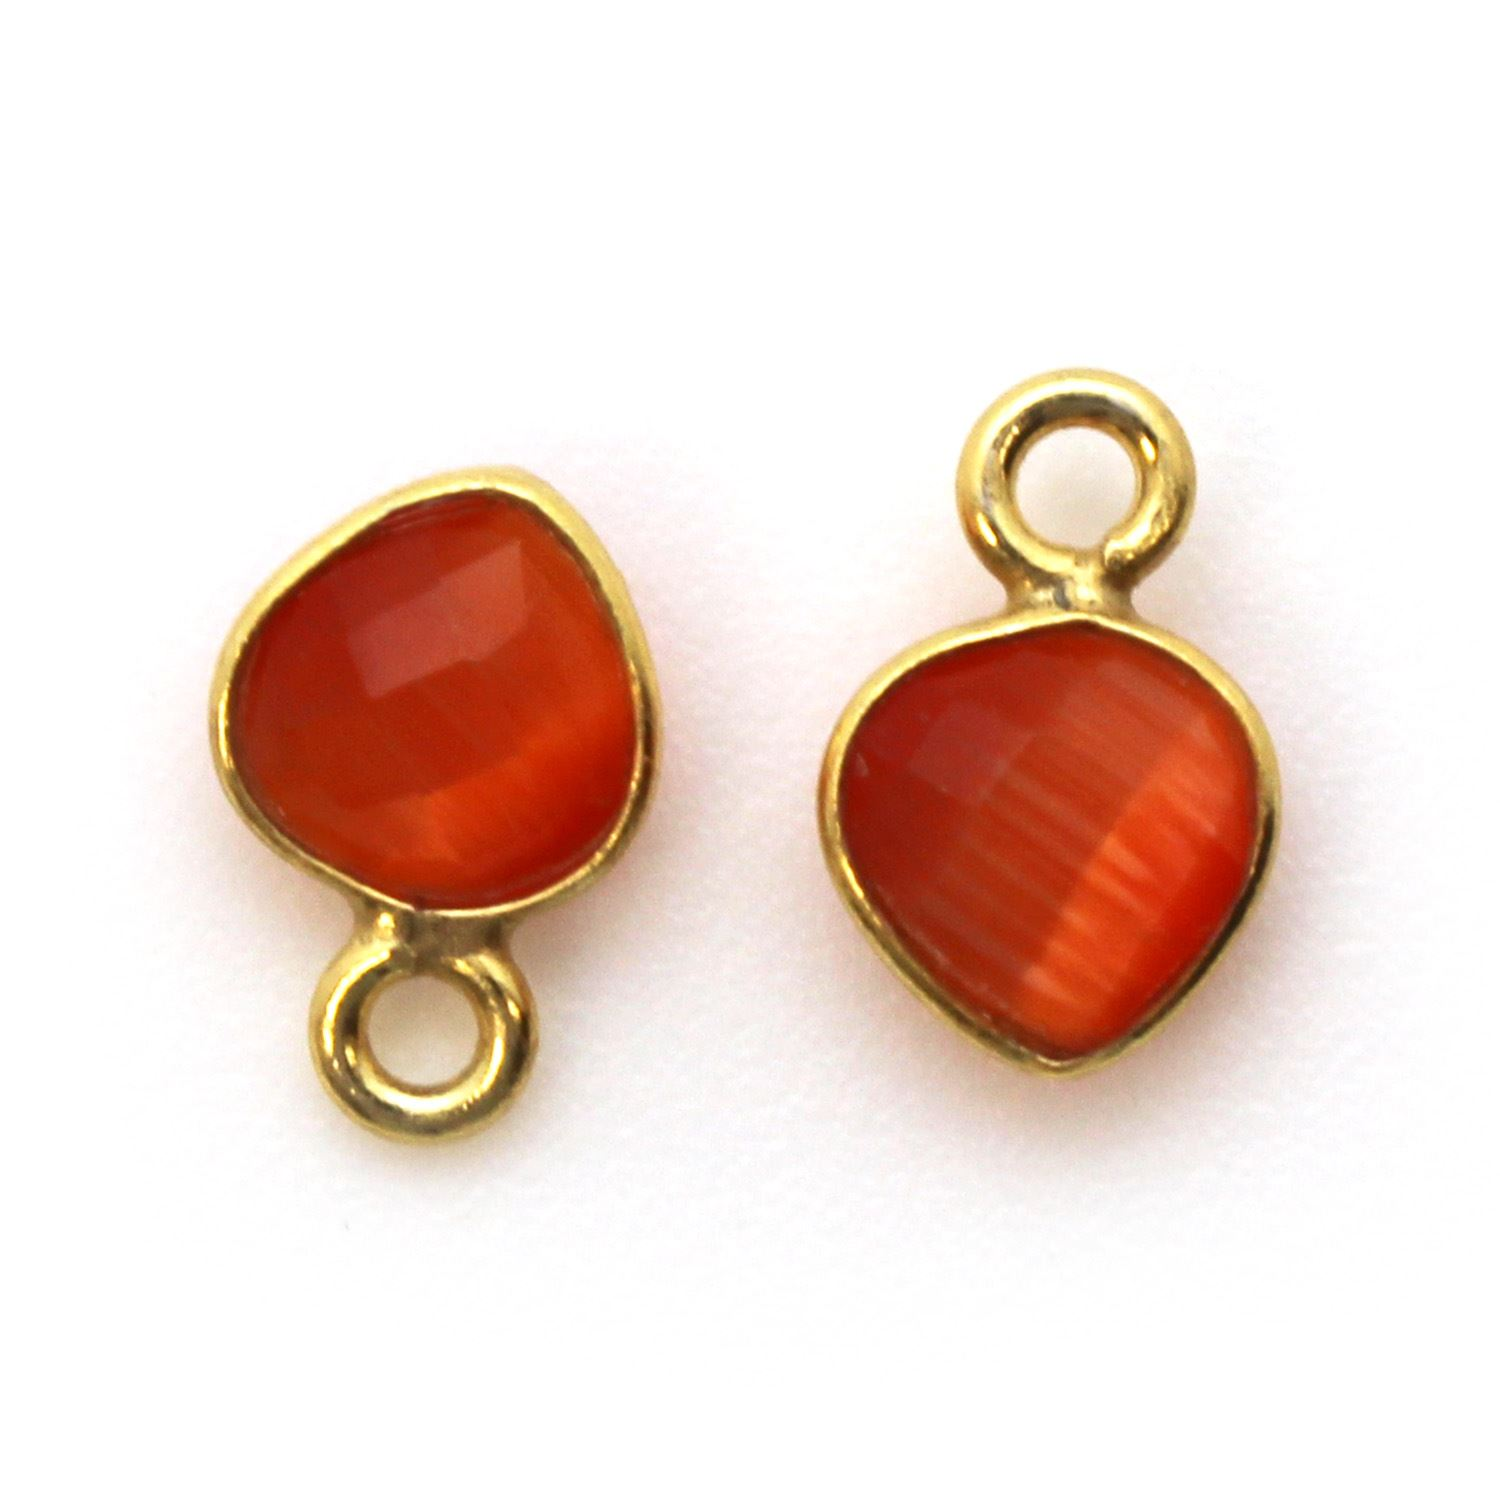 Bezel Gem Pendant-Gold Plated Sterling Silver- 10x7mm Tiny Heart Shape- Orange Monalisa (sold per 2 pieces)